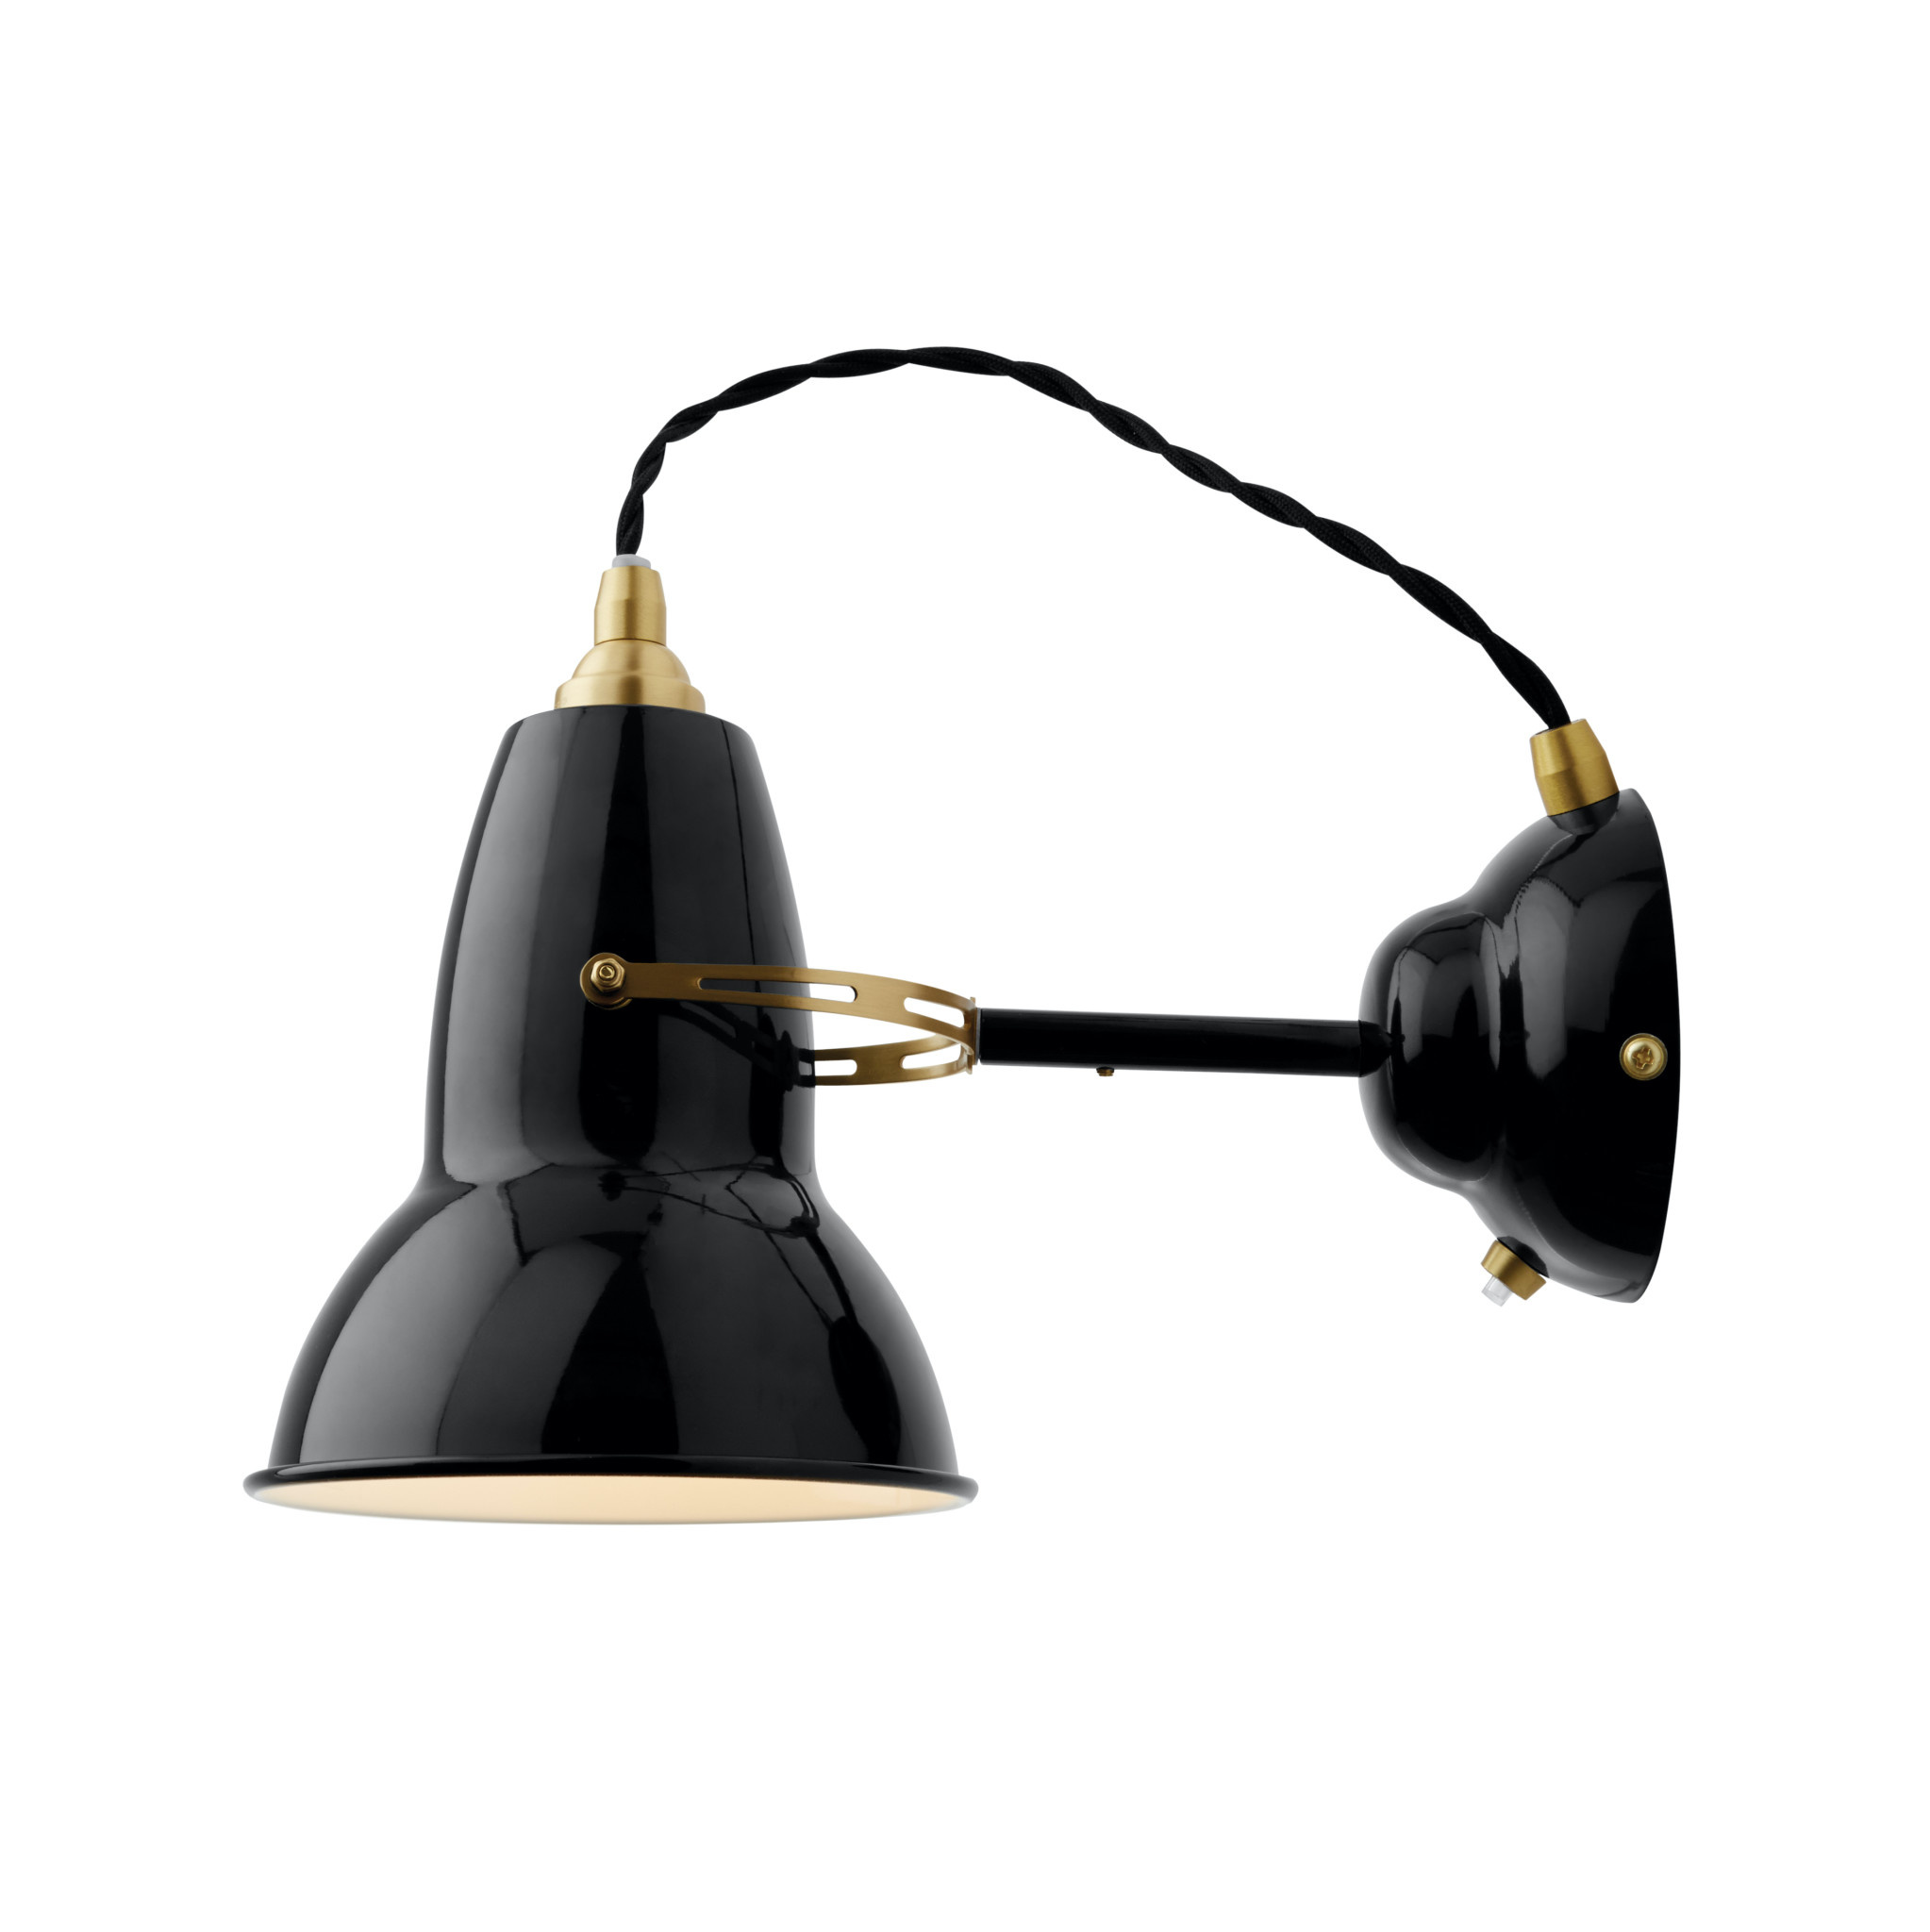 Anglepoise PREORDER Original 1227 Wall Light Sconce - Jet Black with Brass